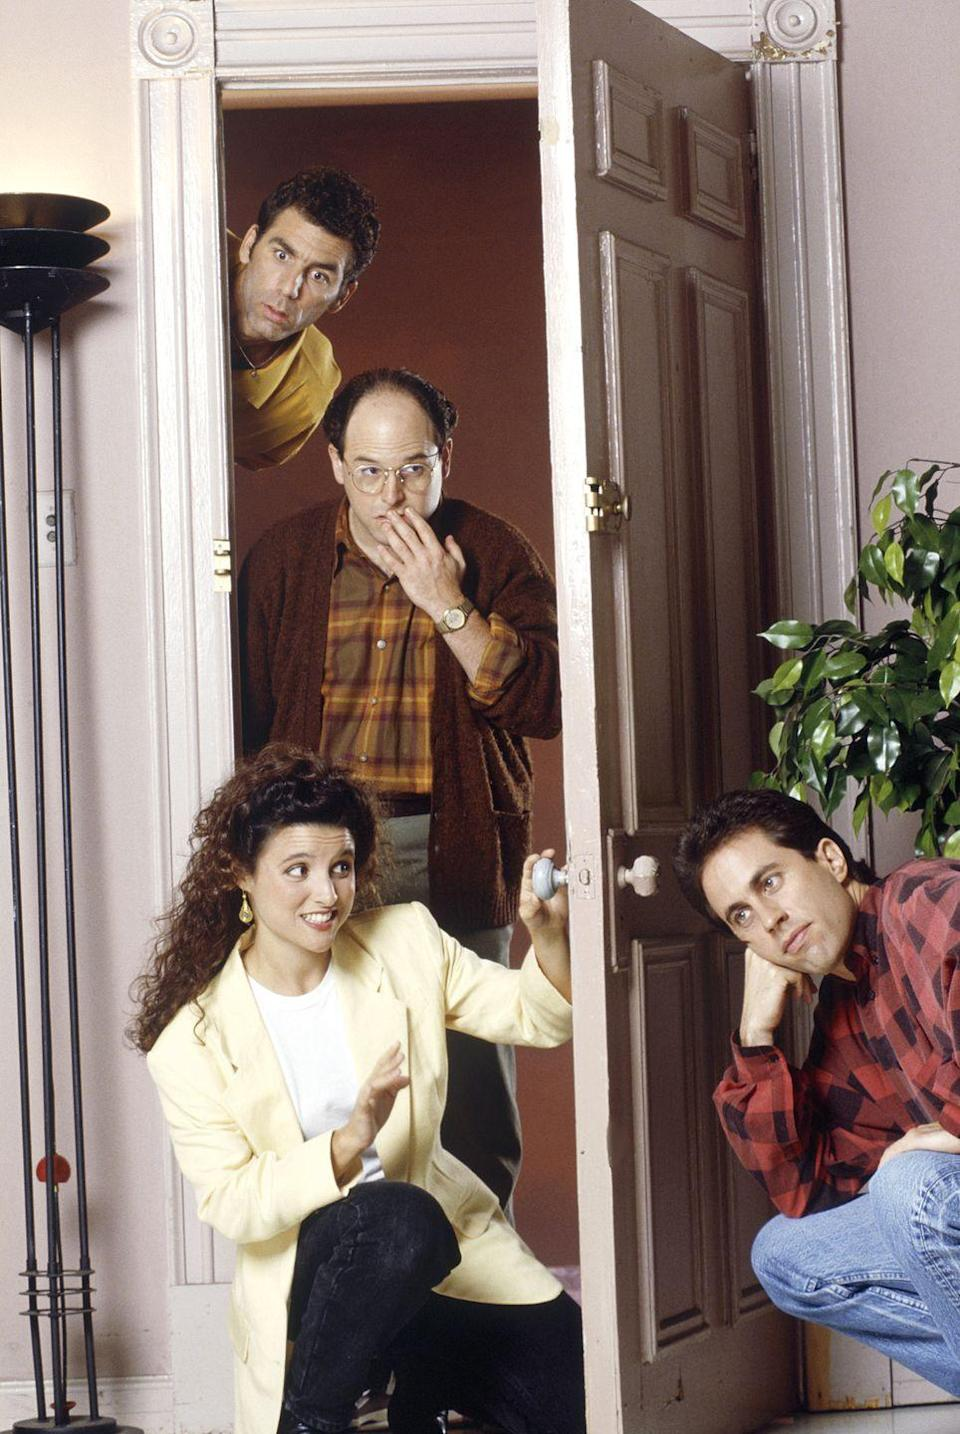 """<p>As the show retooled its casting, Seinfeld also circled back to one of the show's current characters: Kramer. In the pilot, Michael Richards's character was <a href=""""https://decider.com/2019/07/05/seinfeld-pilot-30-anniversary/"""" rel=""""nofollow noopener"""" target=""""_blank"""" data-ylk=""""slk:named Kessler"""" class=""""link rapid-noclick-resp"""">named Kessler</a> and was based on David's ex-neighbor.</p>"""